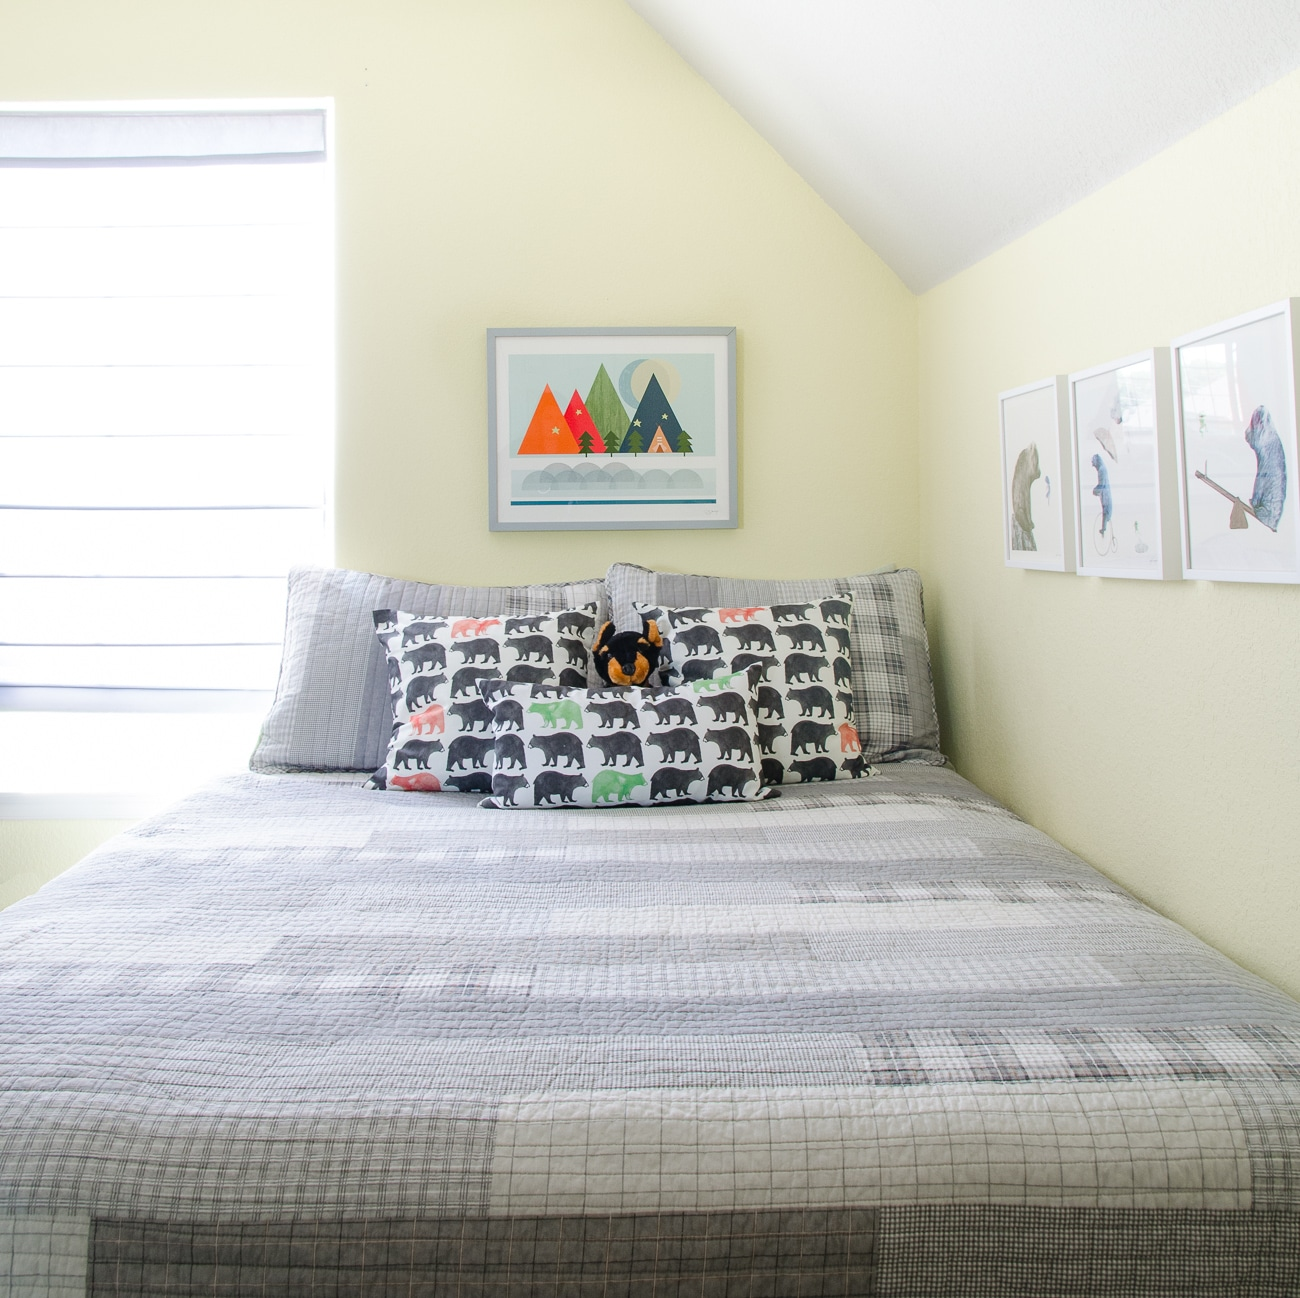 Bear Pillows & Colorful Mountain Art in a Little Boys Camping Room